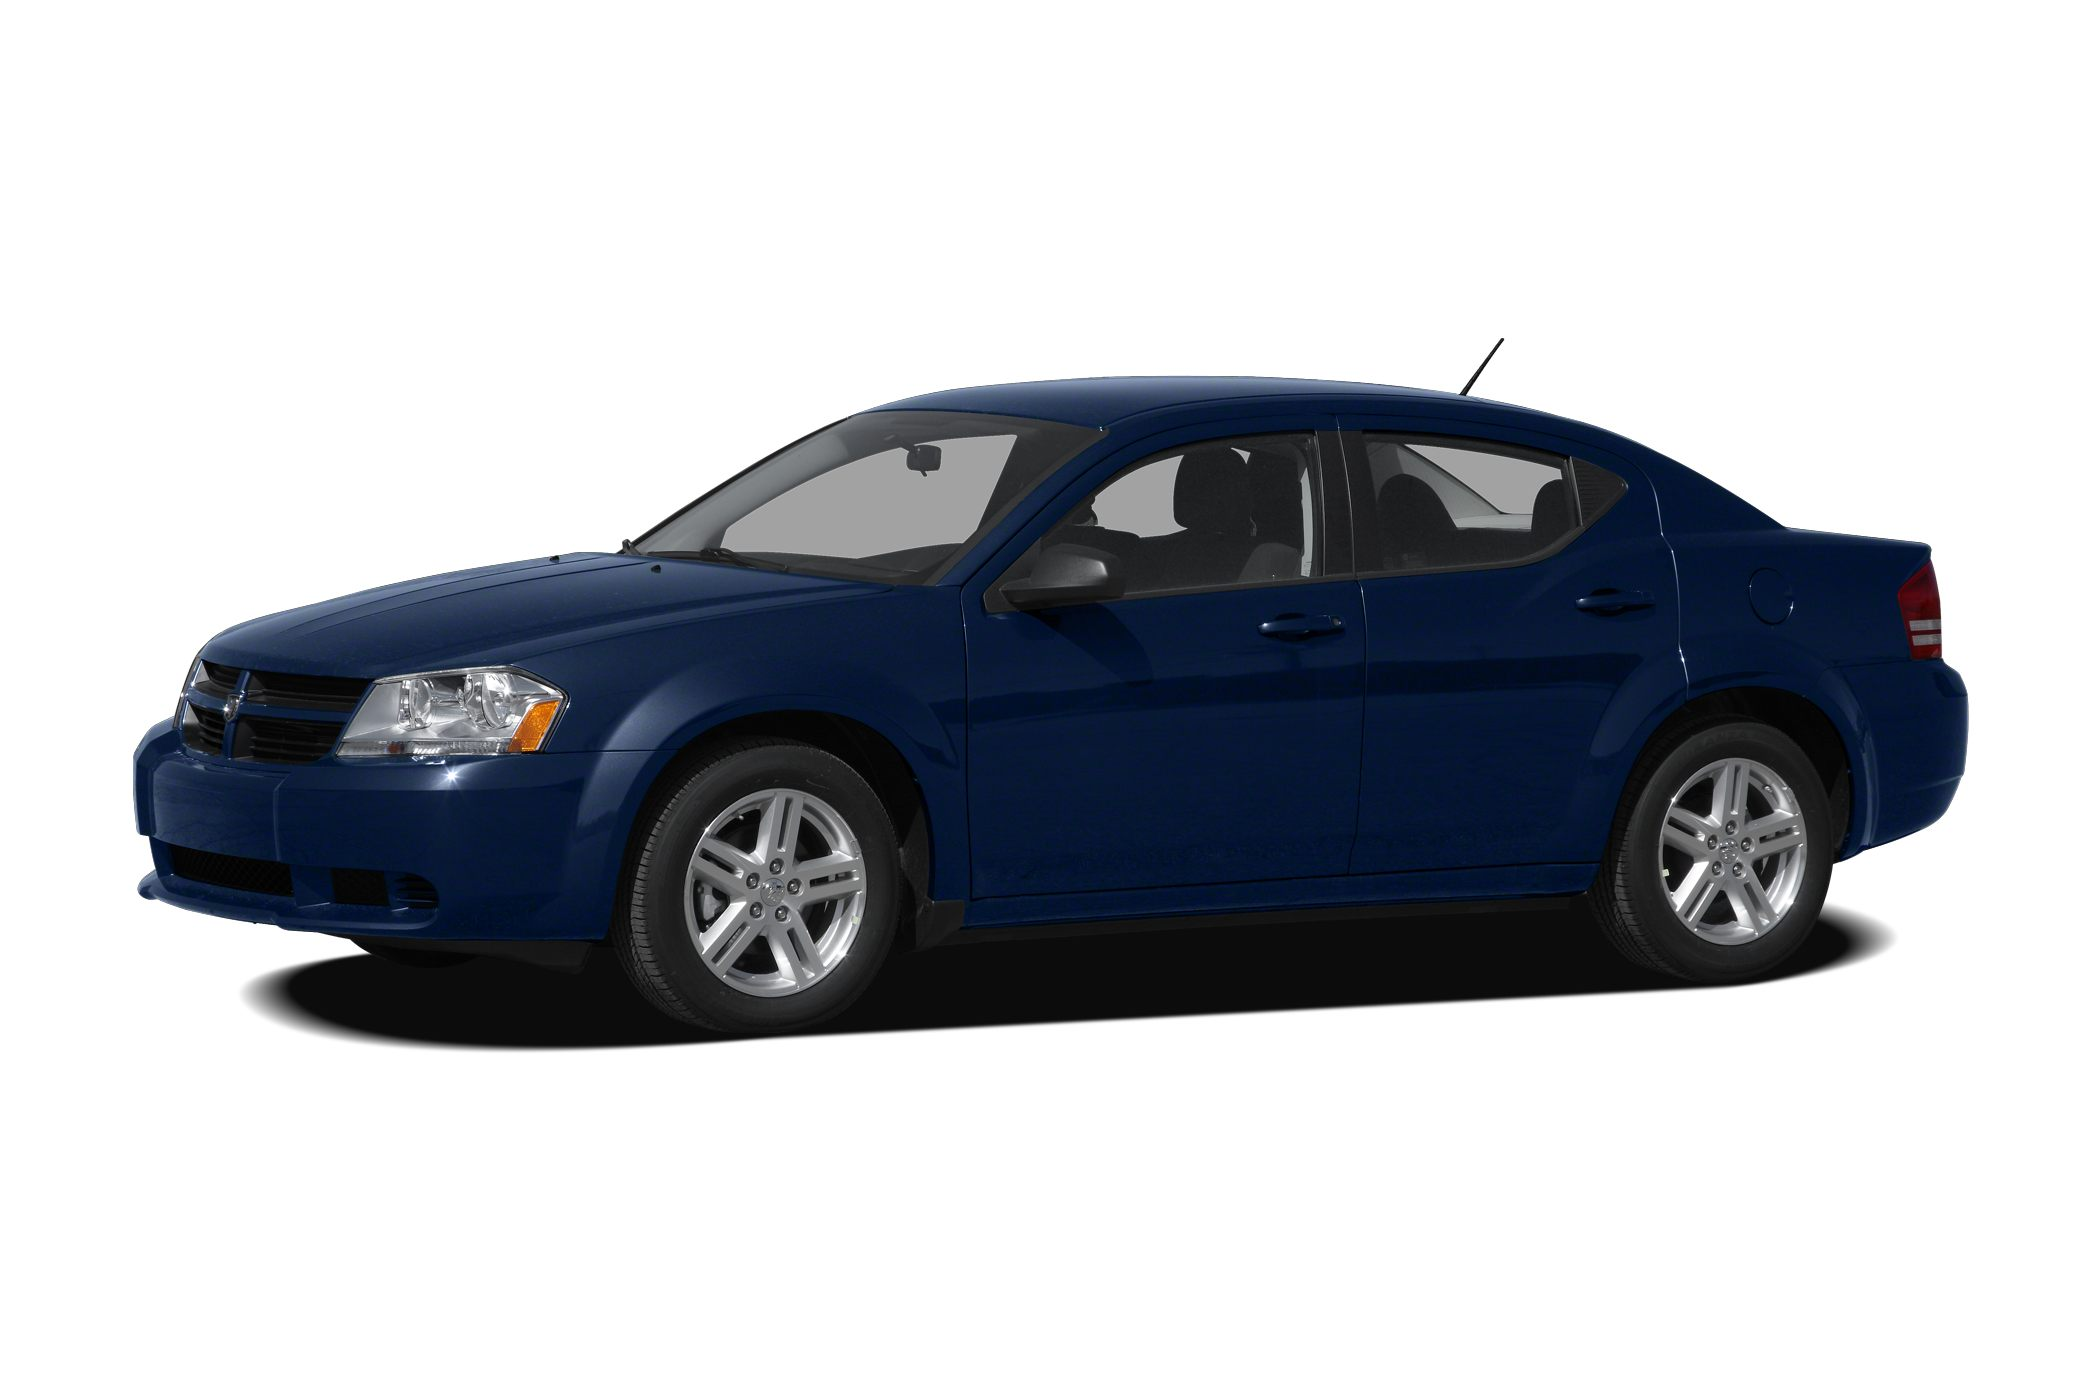 2010 Dodge Avenger SXT Miles 66400Color UNSPECIFIED Stock 1B3CC4FB5AN168811 VIN 1B3CC4FB5AN1